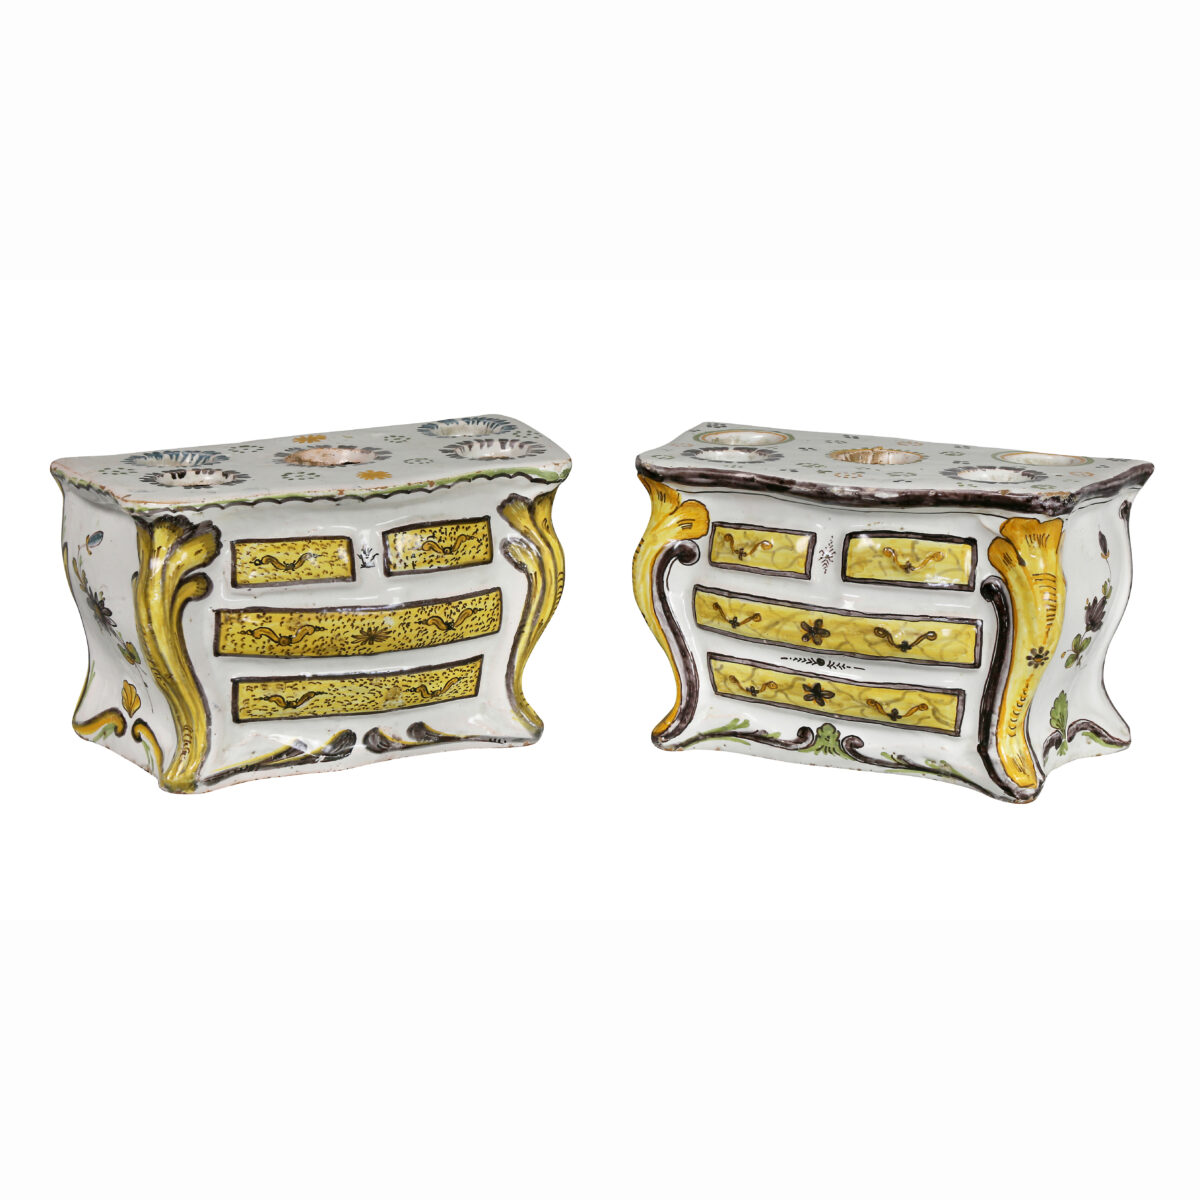 Pair of French Faience Bough Pots in the Form of Commodes